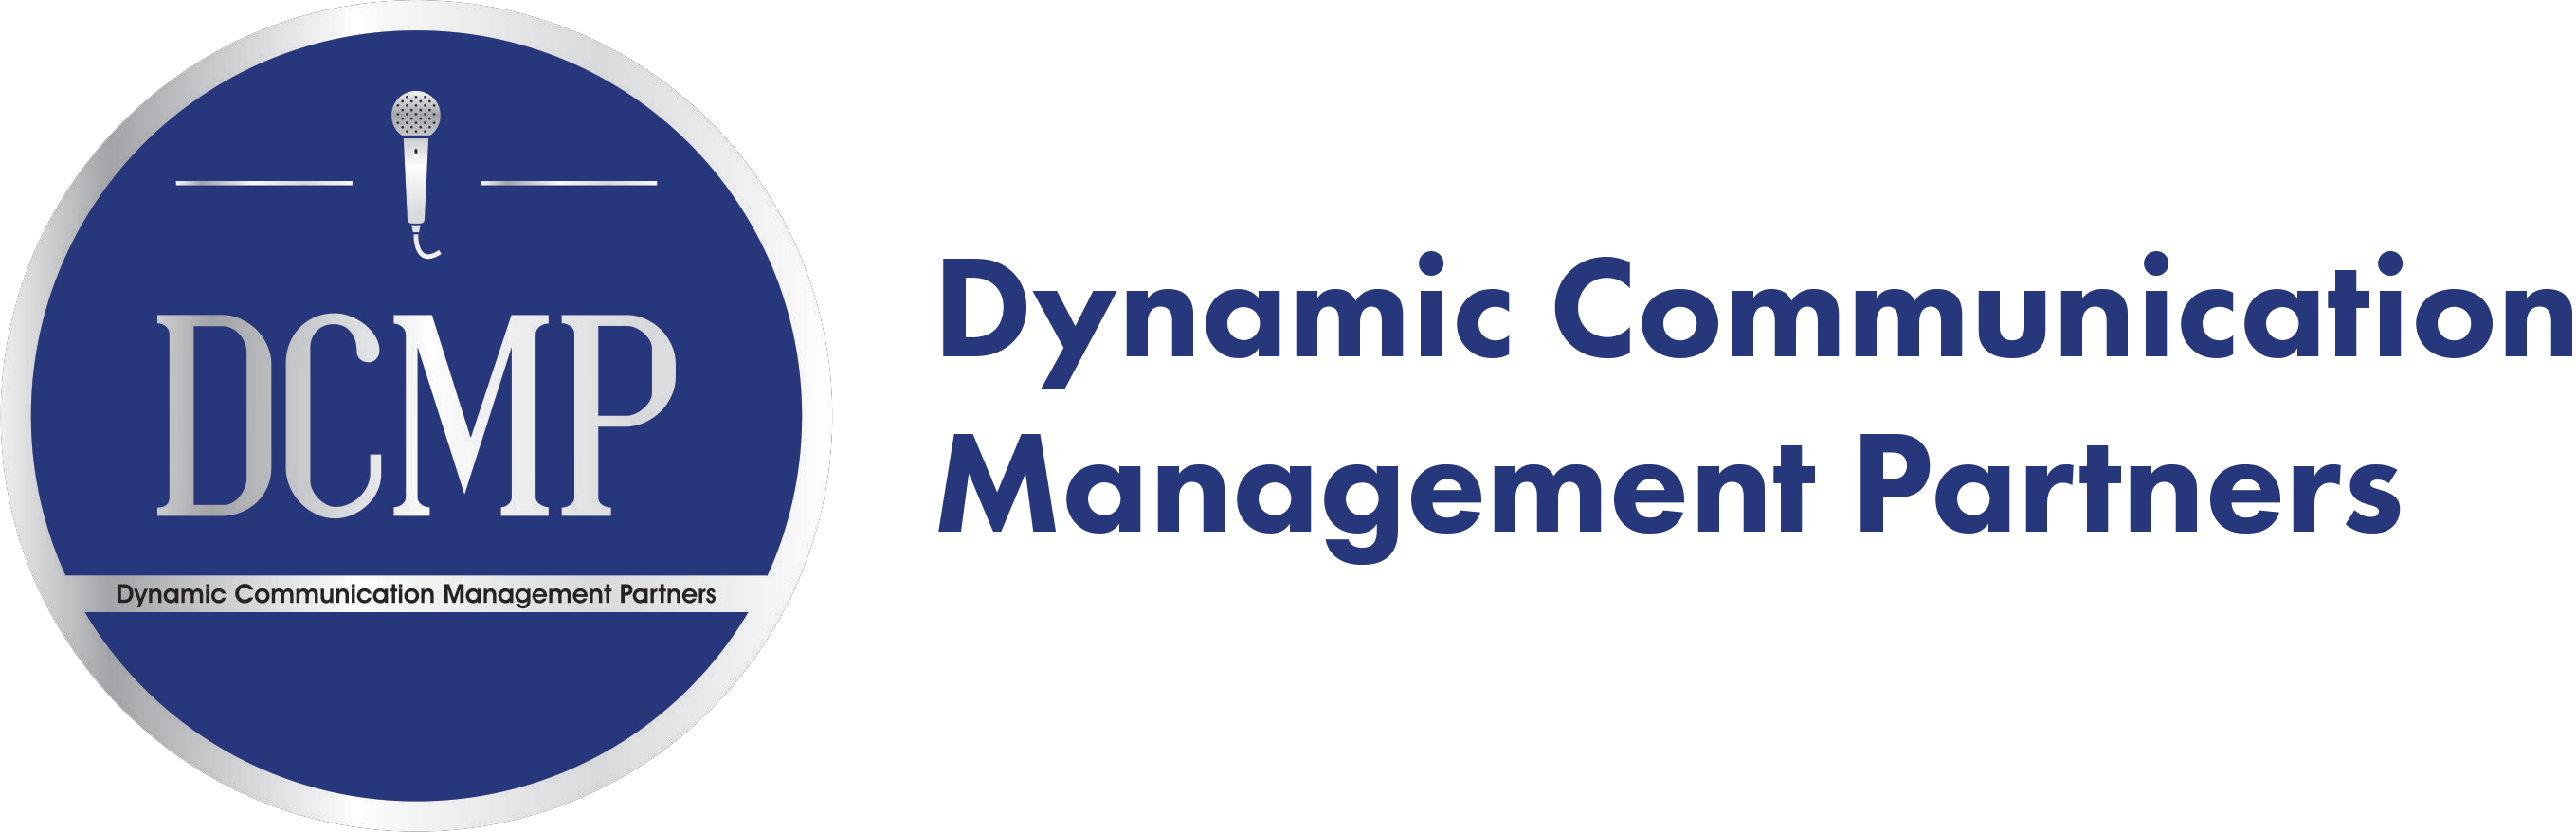 Dynamic Communication Management Partners Homepage